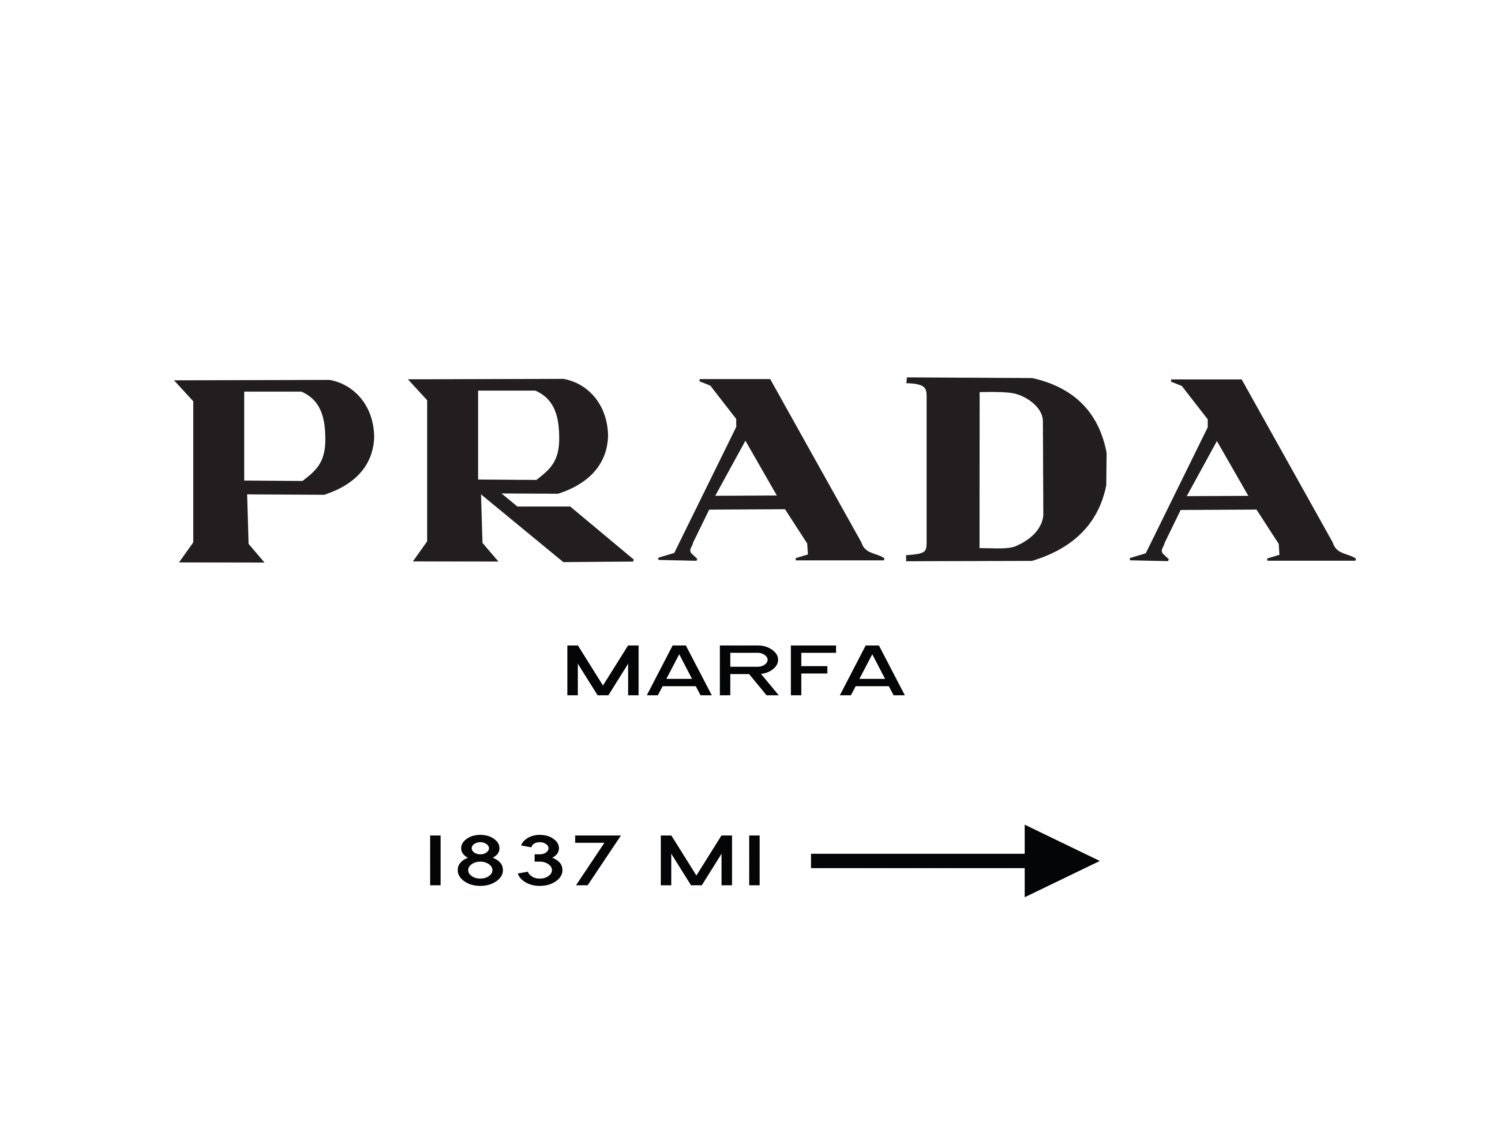 prada marfa diy. Black Bedroom Furniture Sets. Home Design Ideas